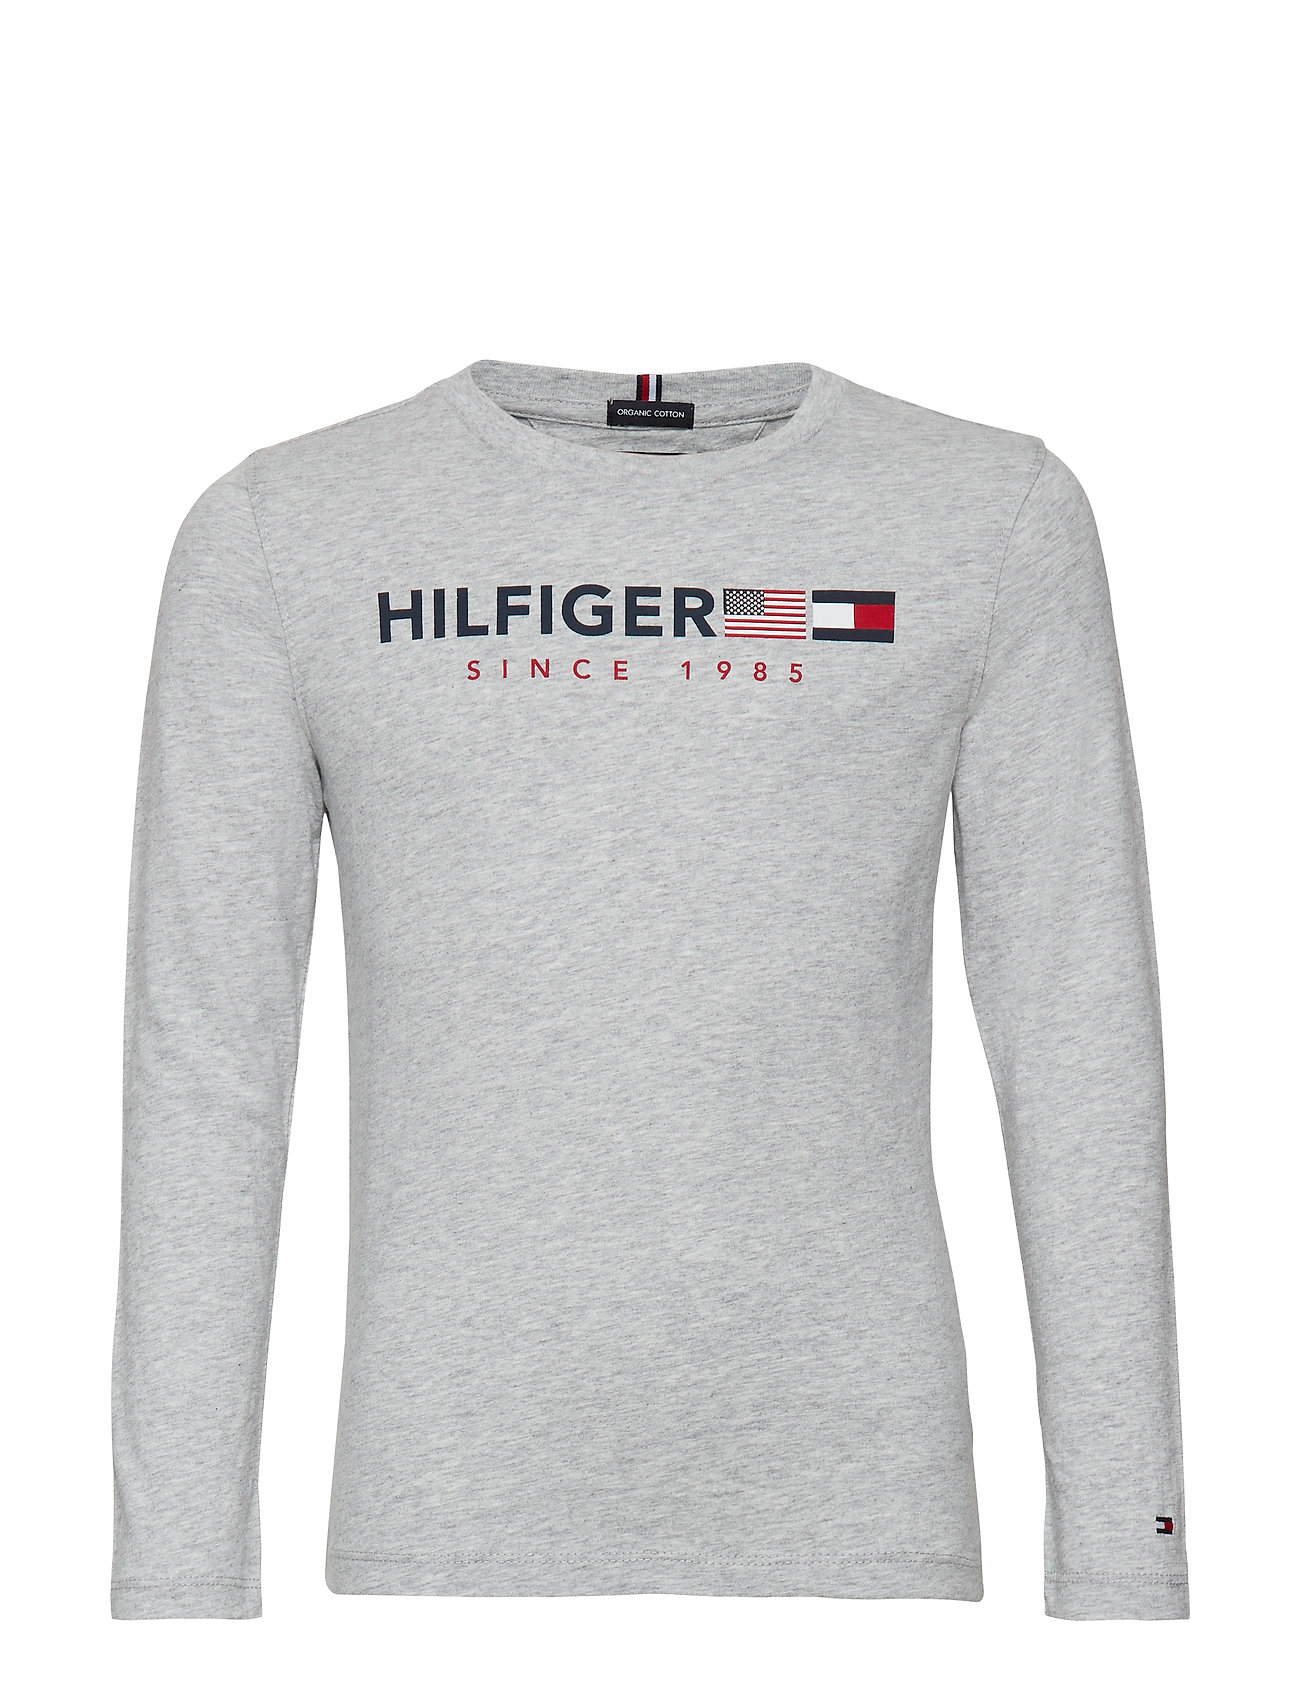 Tommy Hilfiger FLAGS GRAPHIC TEE L/ - GREY HEATHER